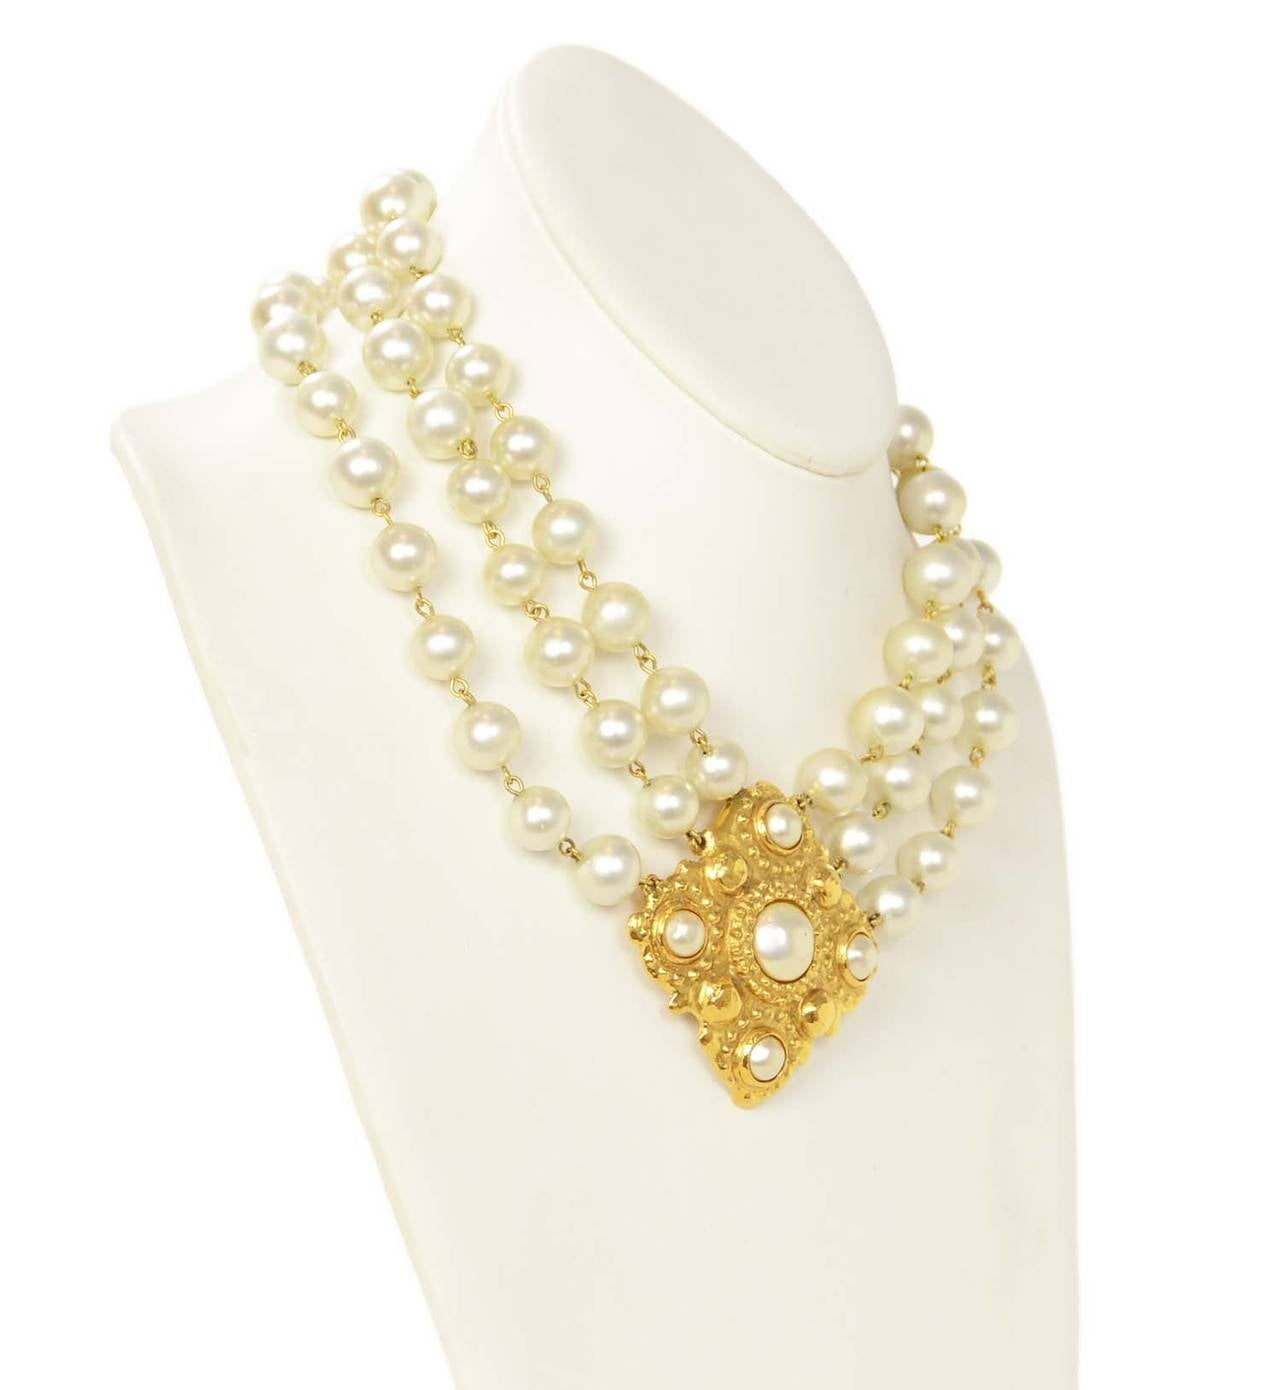 CHANEL Vintage 1986 Three Strand Pearl Choker w/Gold & Pearl Pendant 2